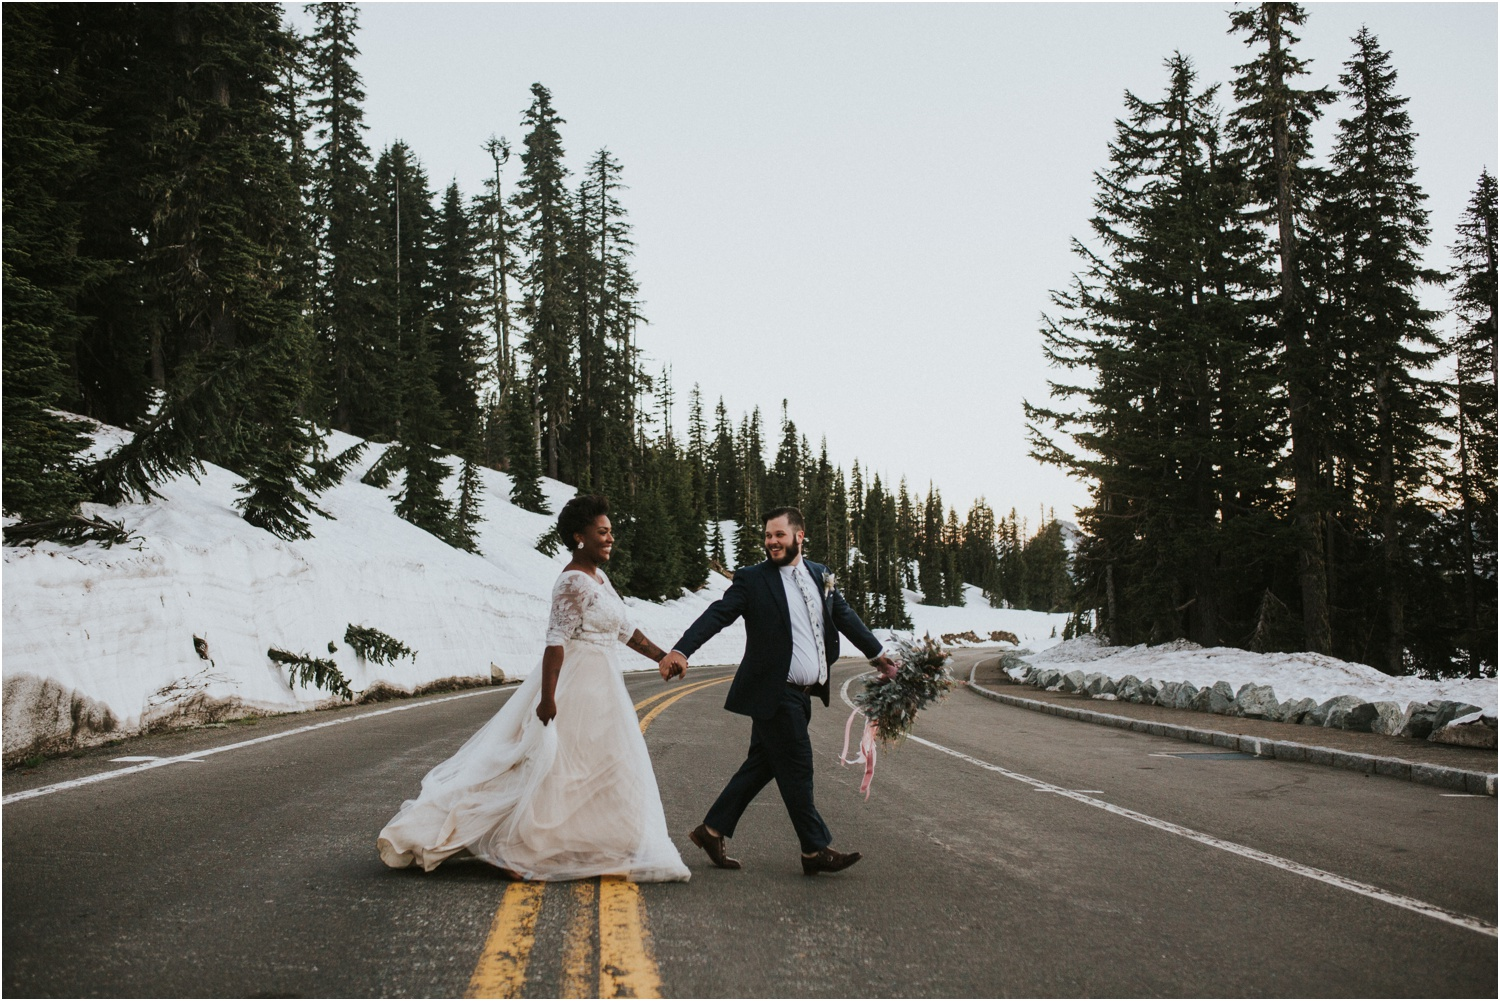 lovestoriesco-amber-phinisee-seattle-mount-rainier-elopement_0092.jpg